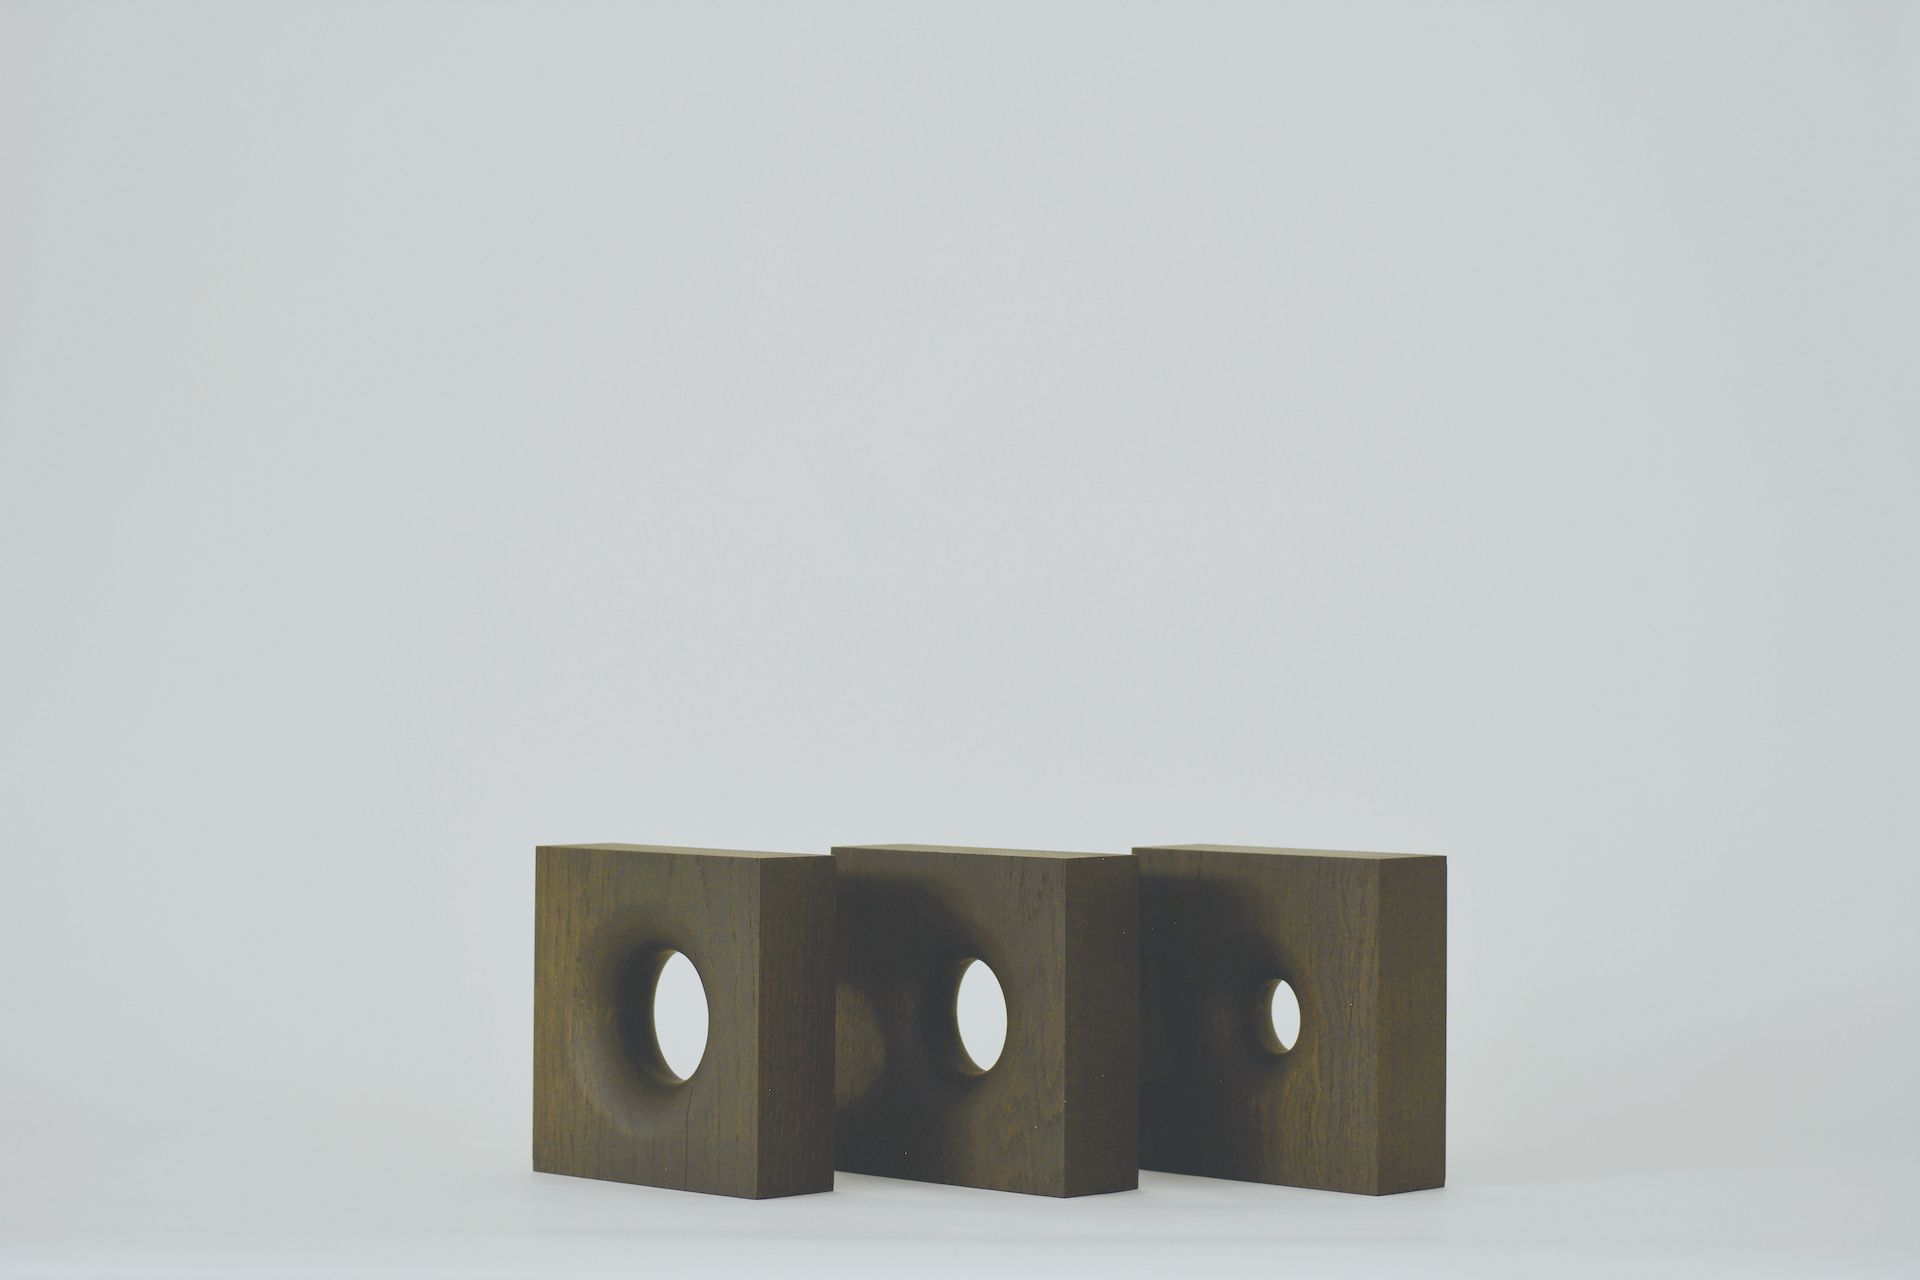 Three square blocks are lined up in a row, each with a smoothed hole in the center that decrease in size with each cube, all against a hazy white background.